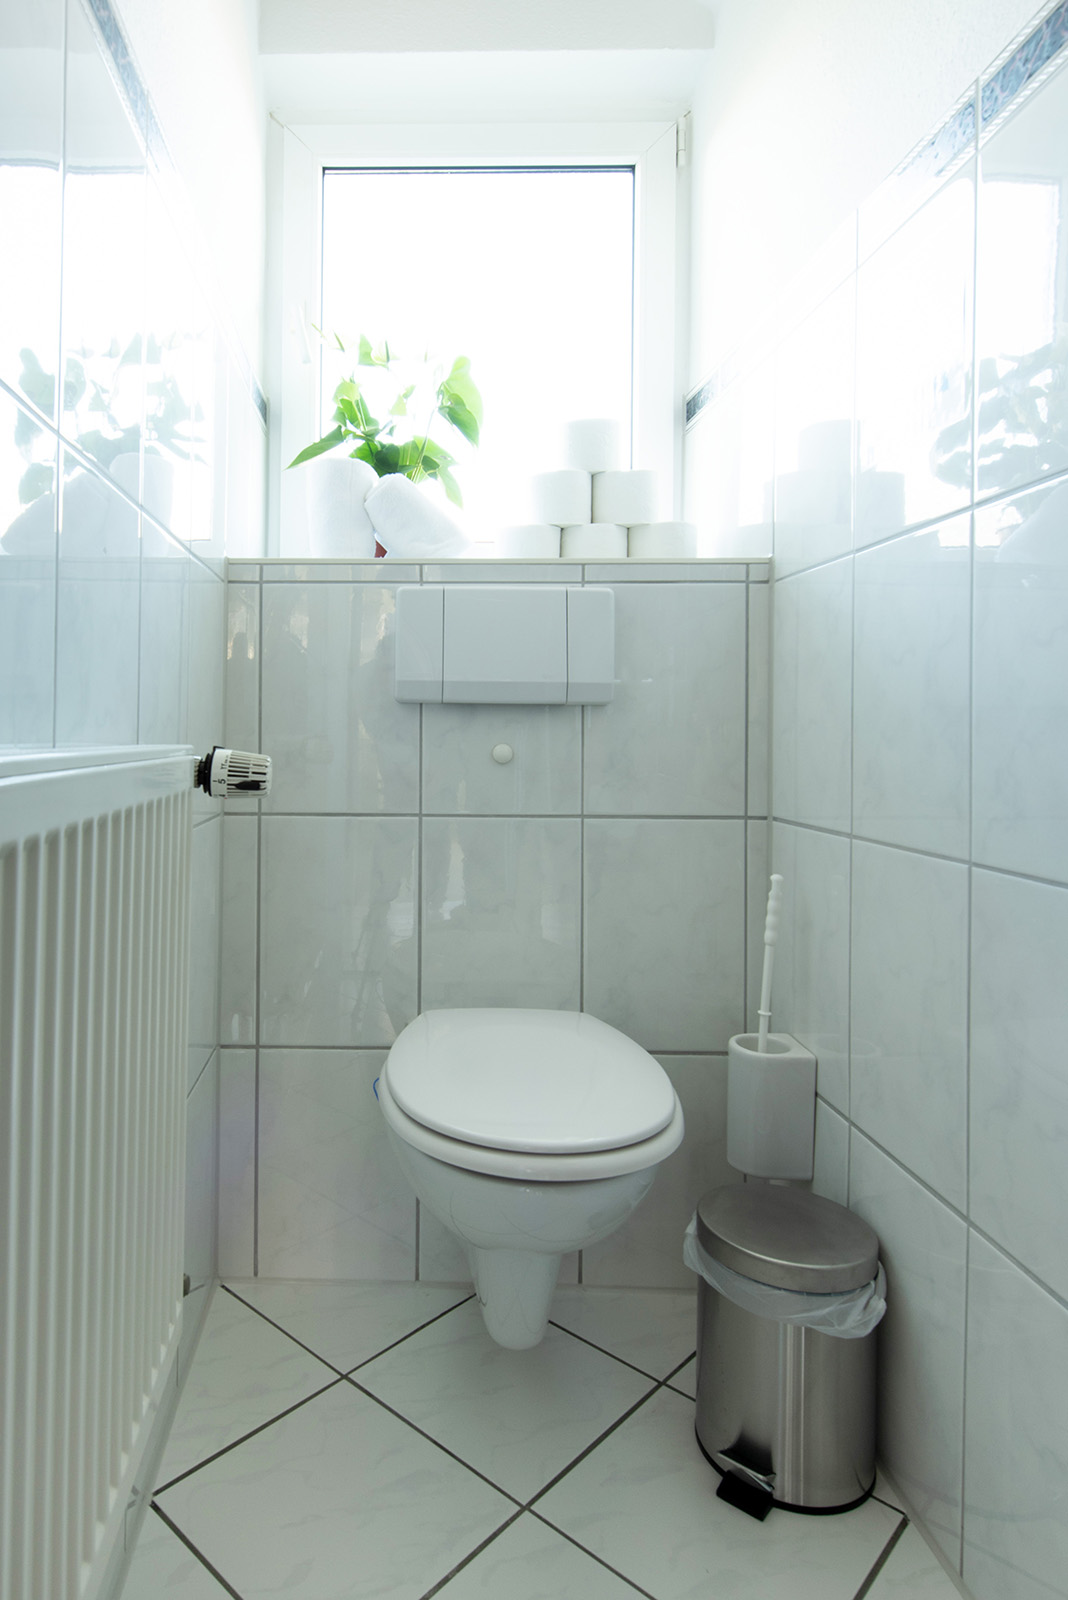 Holiday apartments on Lake Constance: Ittendorf - Lavatory